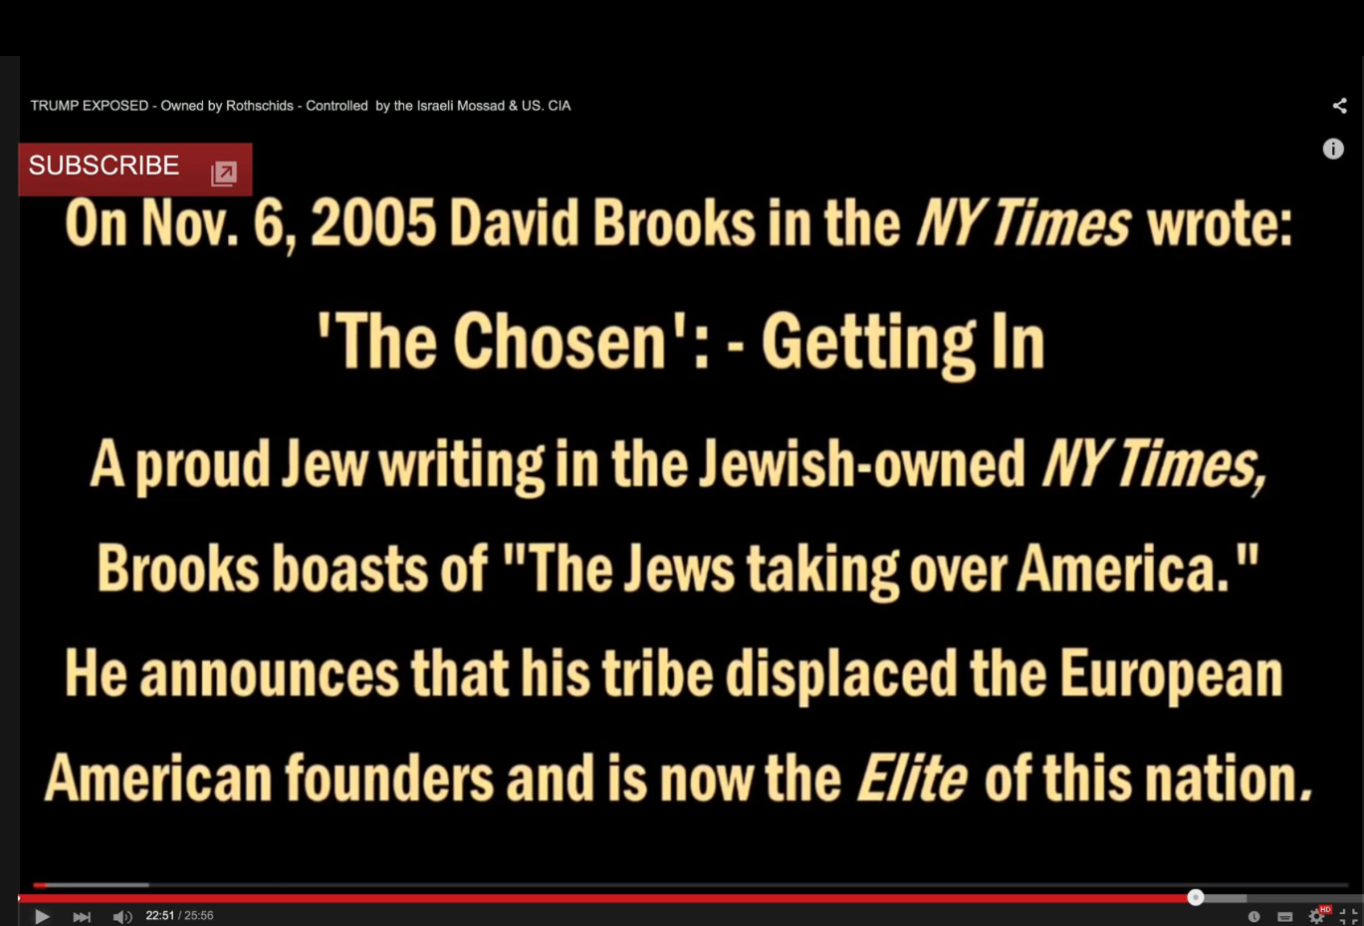 jewish_takeover_1.png